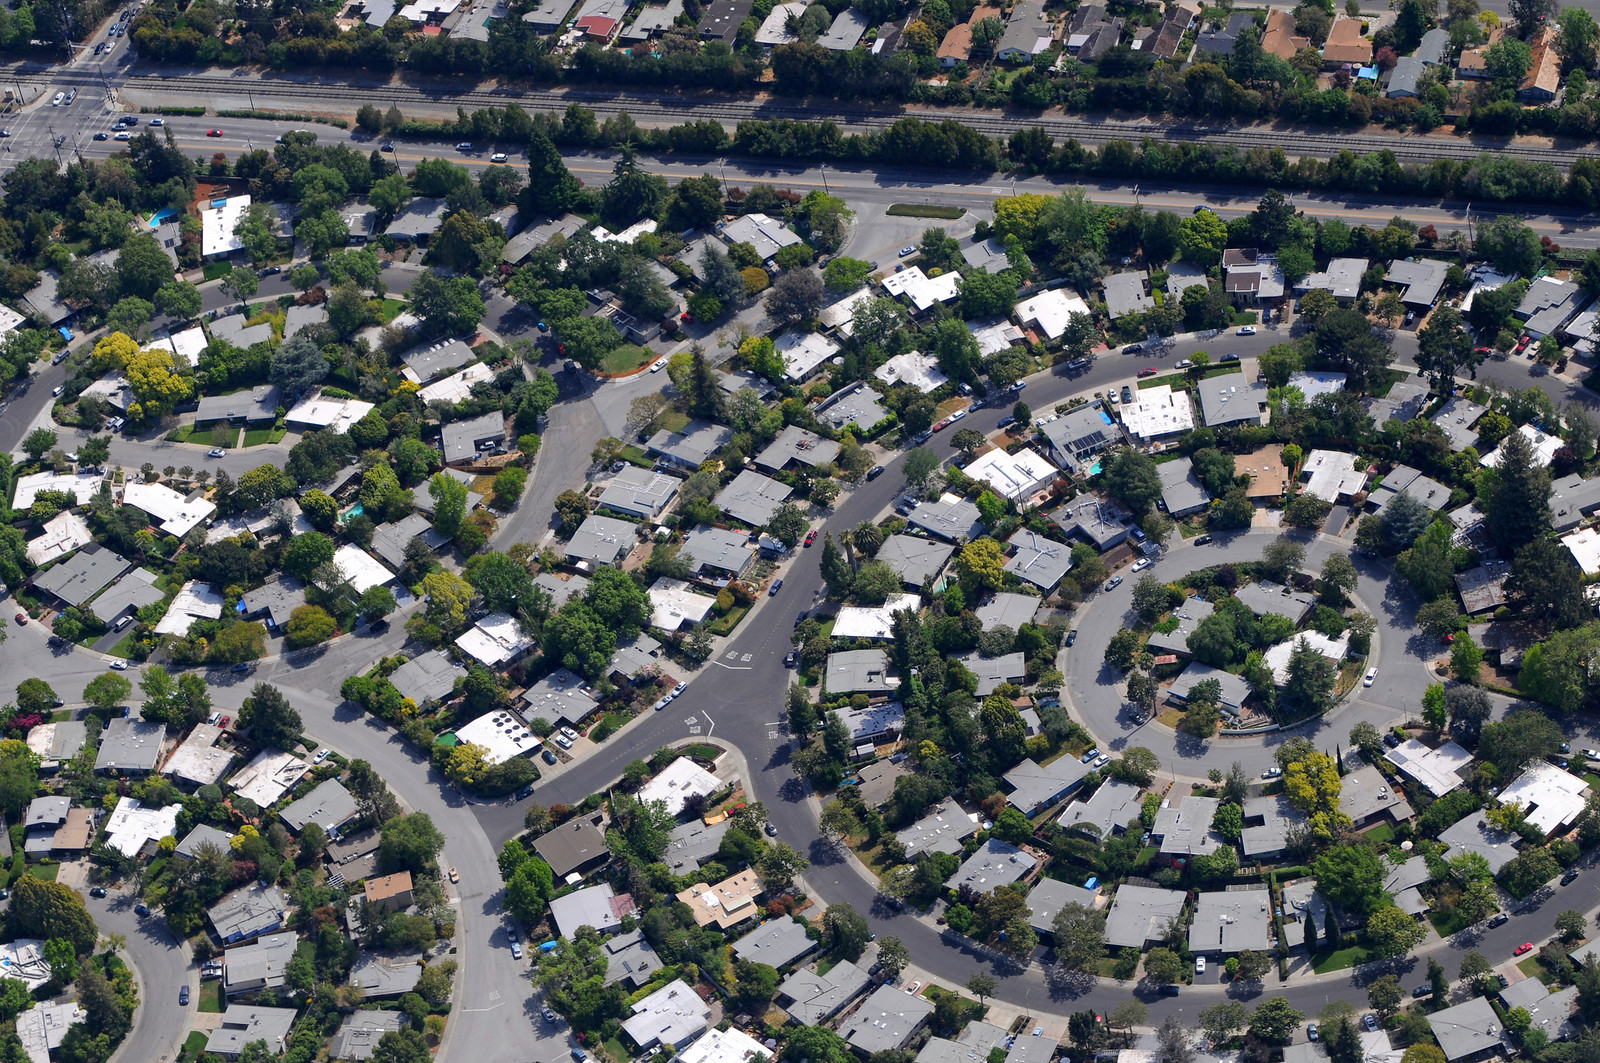 Palo Alto Aerial Circle Neighborhood.jpg